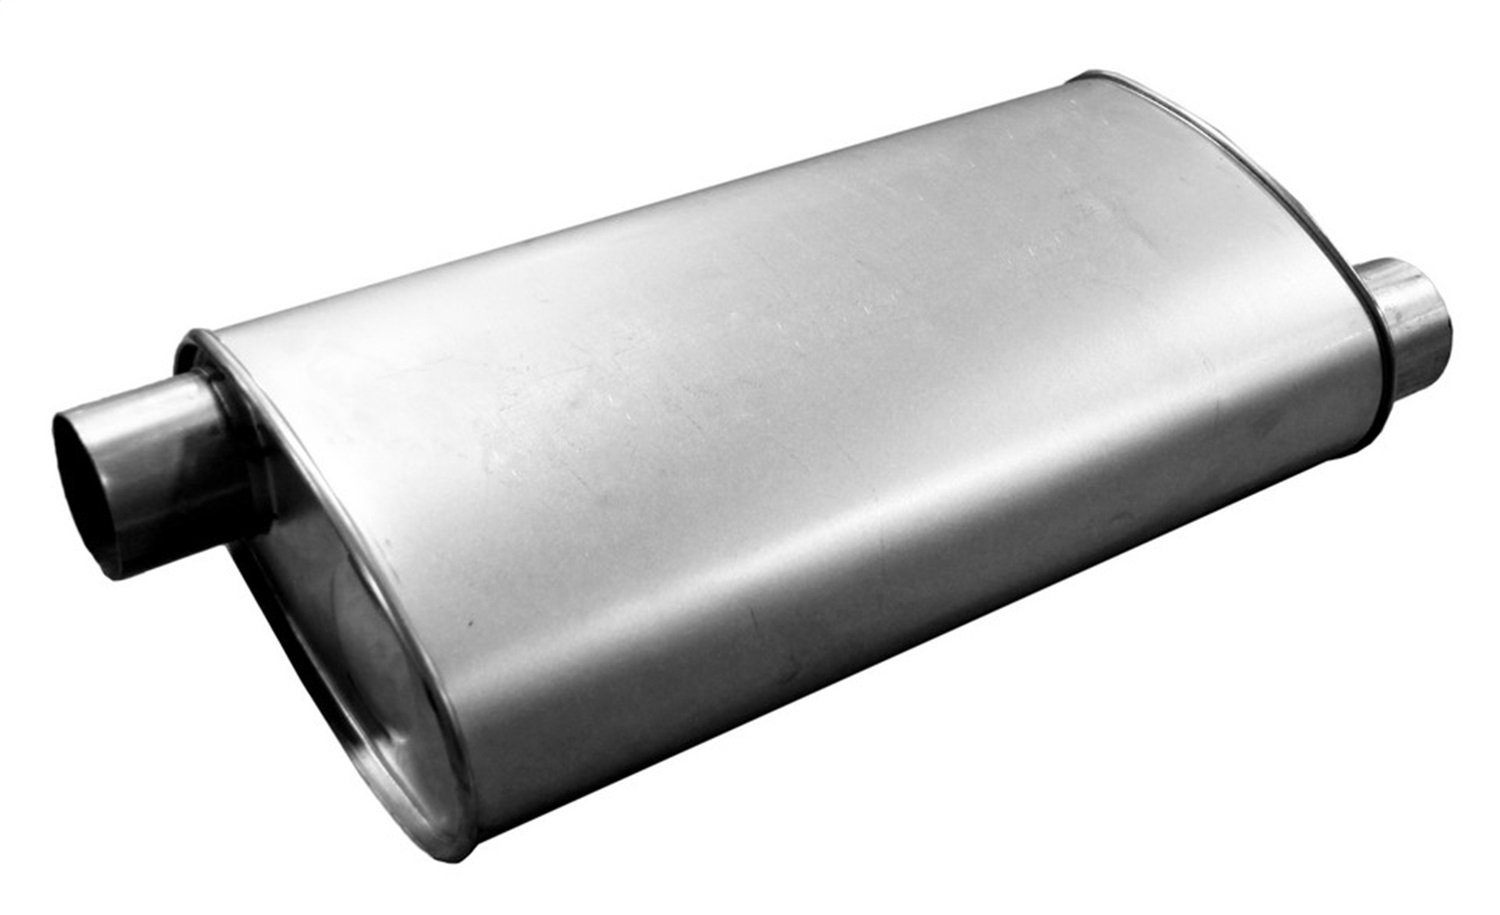 Dynomax 17665 Super Turbo Muffler